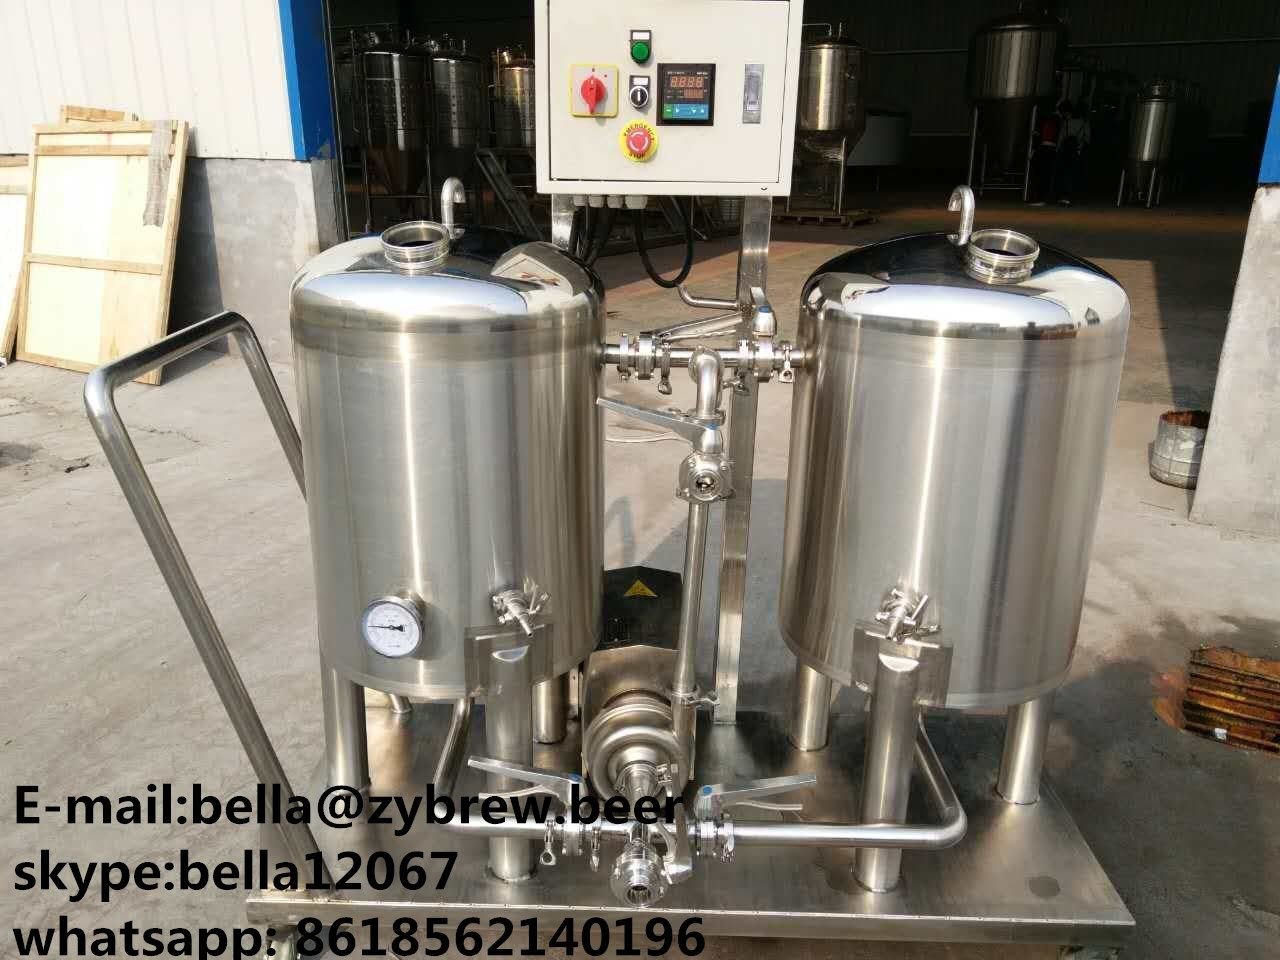 Cip Cleaning System 1 Alkali Tank With Heating Function 2 Sterilization Tank 3 Cip Pump 4 Micro Power Ca Home Brewery Beer Brewing Brewing Equipment